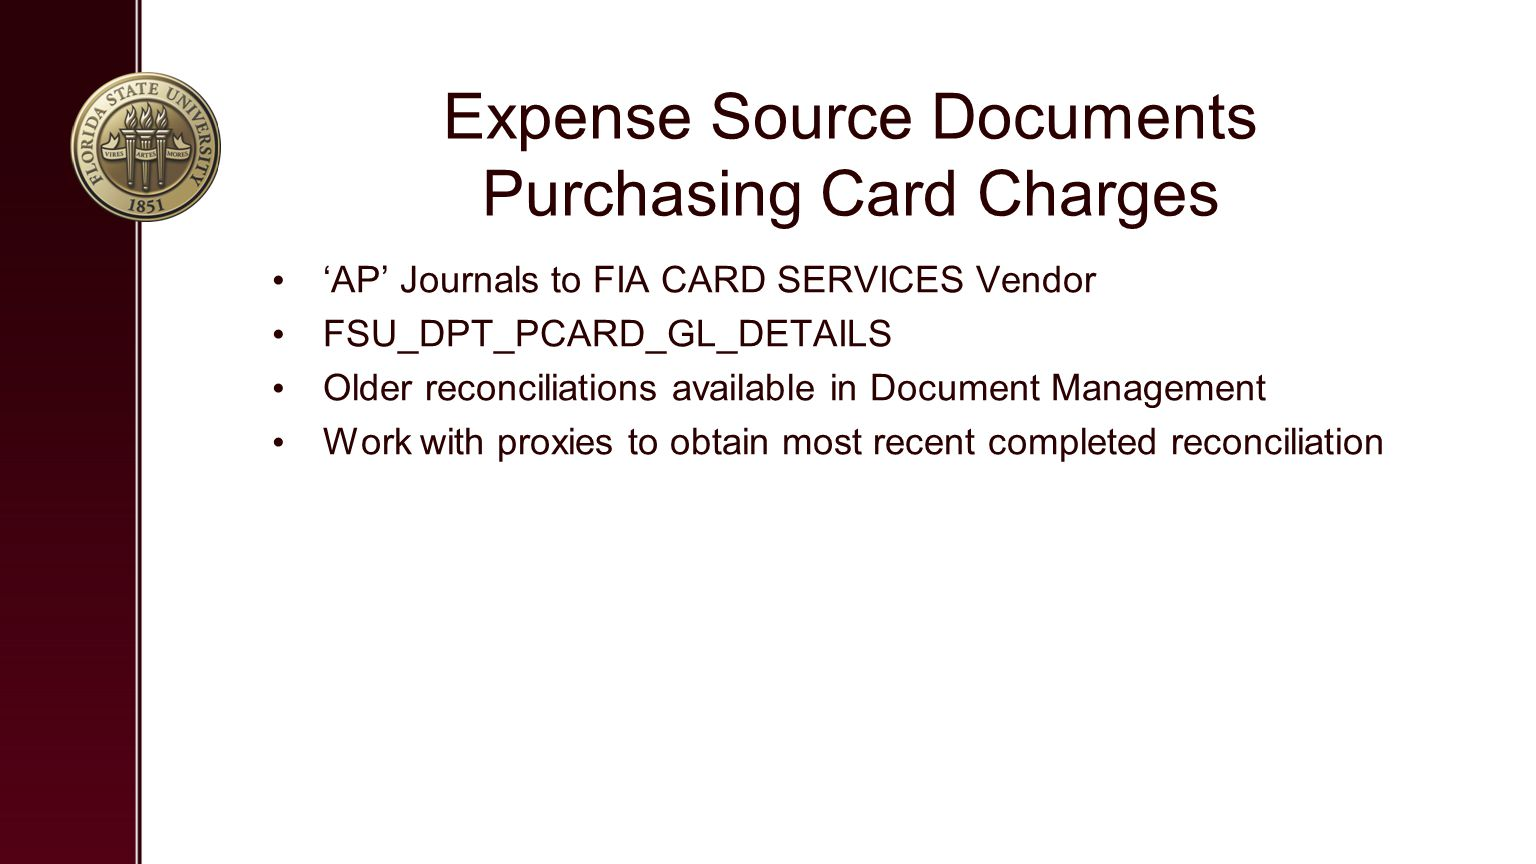 Expense Source Documents Purchasing Card Charges 'AP' Journals to FIA CARD SERVICES Vendor FSU_DPT_PCARD_GL_DETAILS Older reconciliations available in Document Management Work with proxies to obtain most recent completed reconciliation